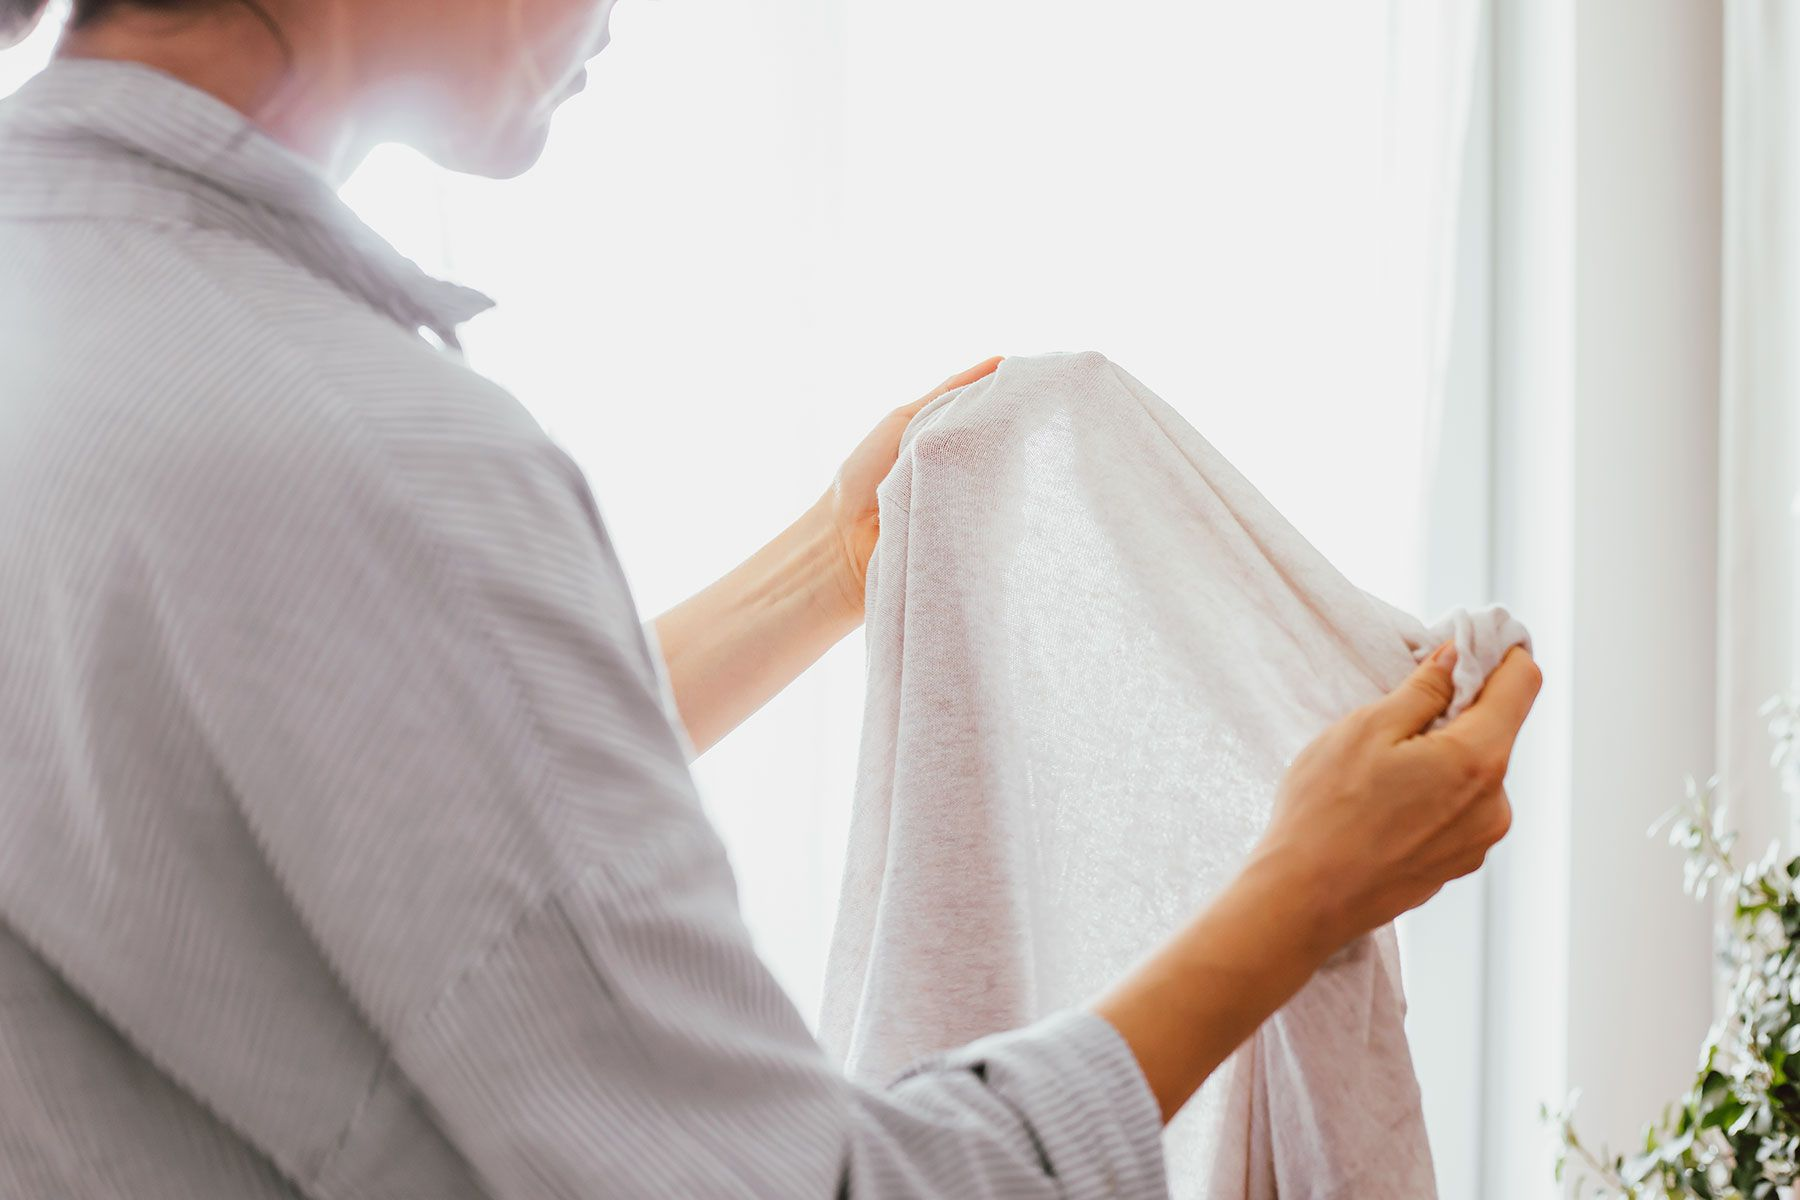 A woman inspecting laundry